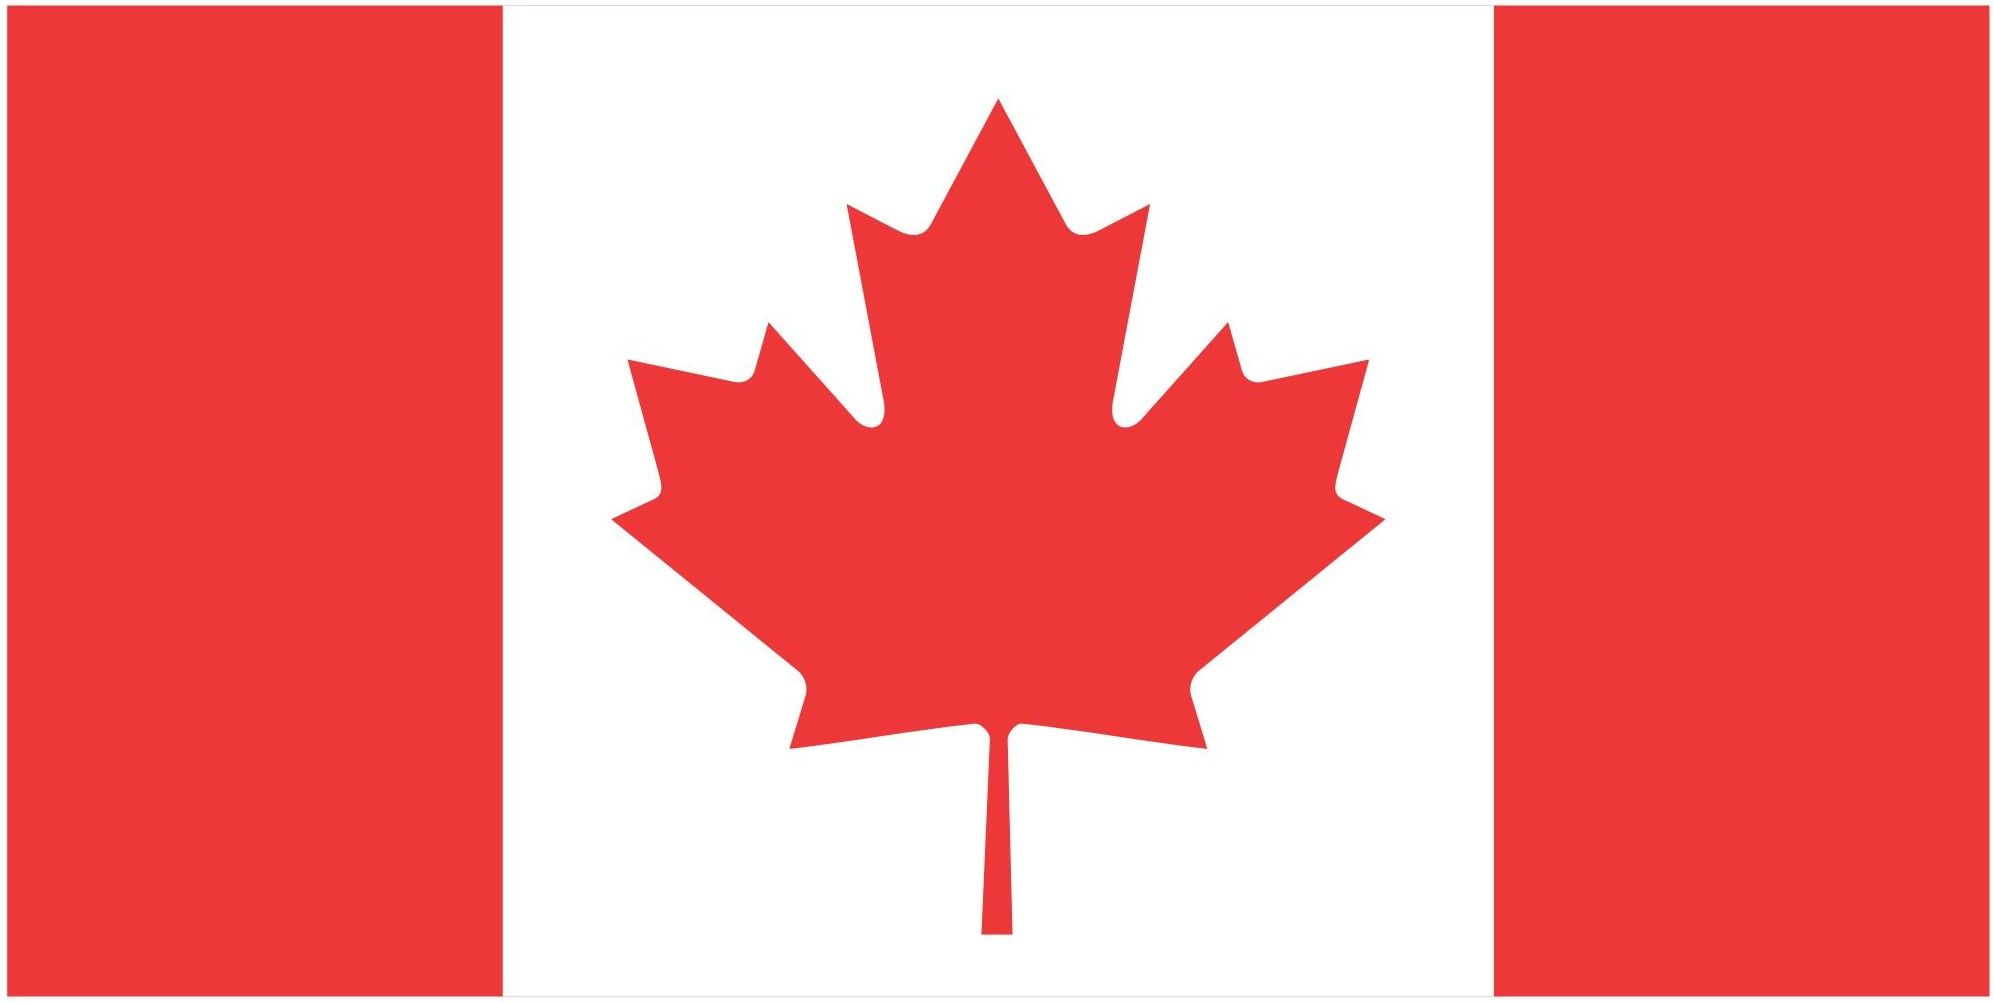 Canadian Flag [Canada] Vector EPS Free Download, Logo, Icons, Brand Emblems